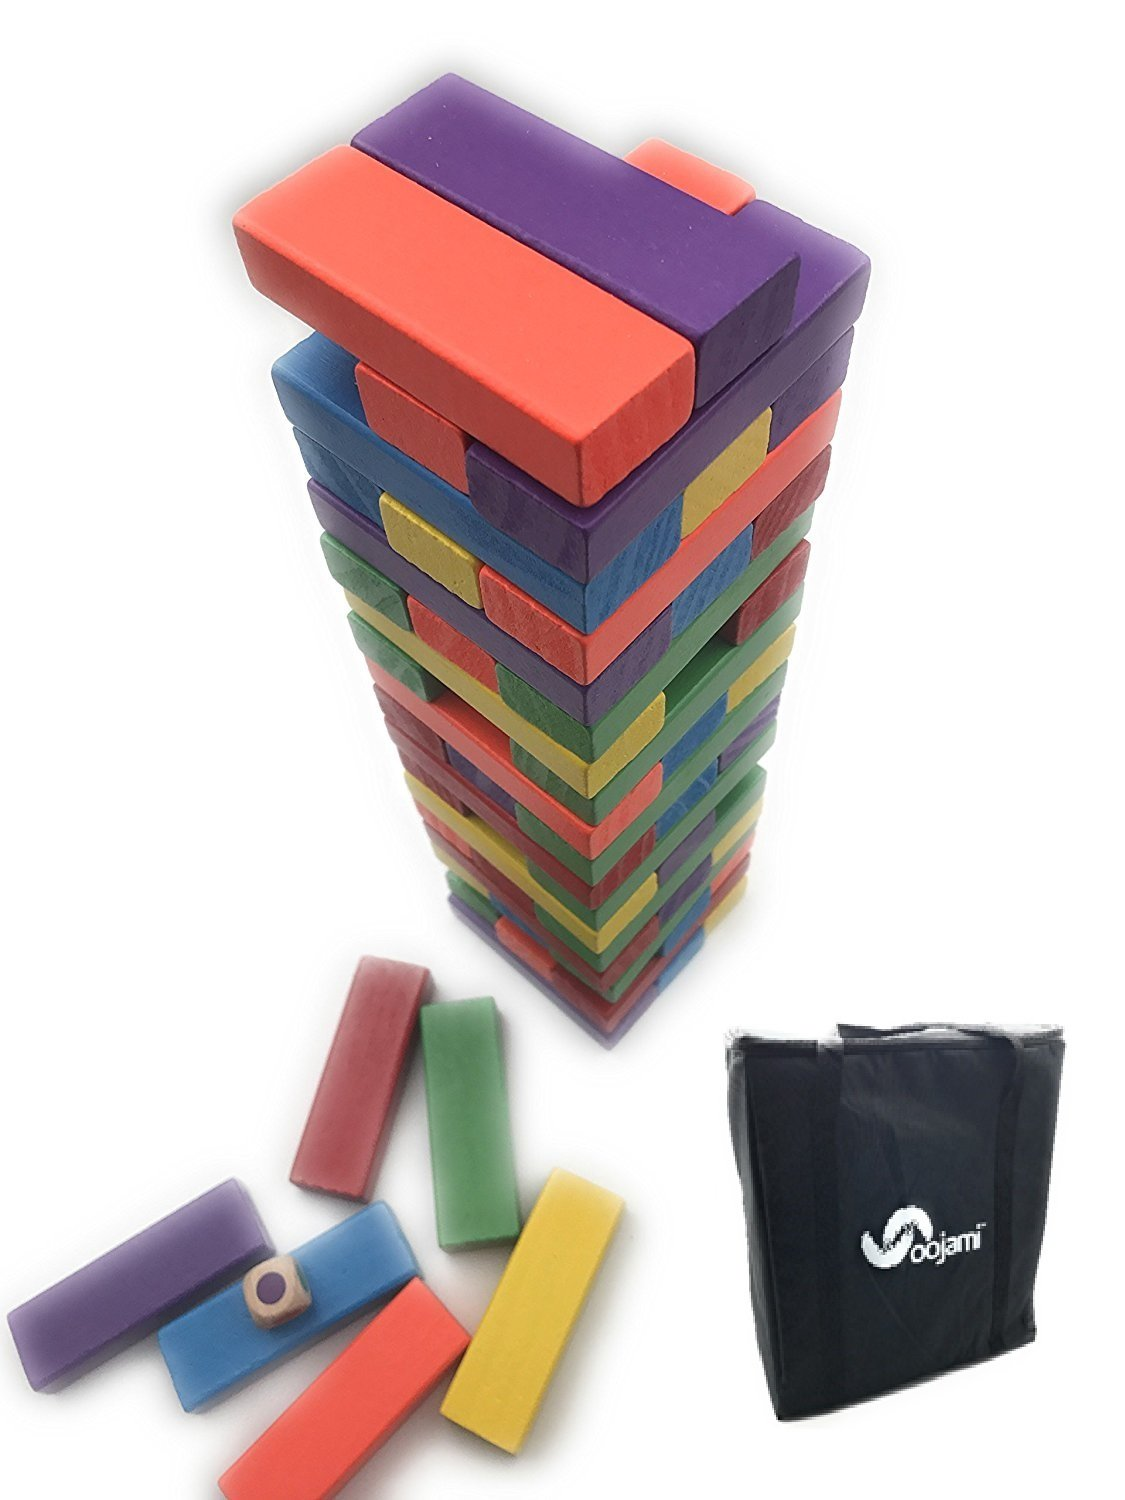 Giant Colorful Tumbling Timbers comes with Large Dice & Storage Bag Oojami